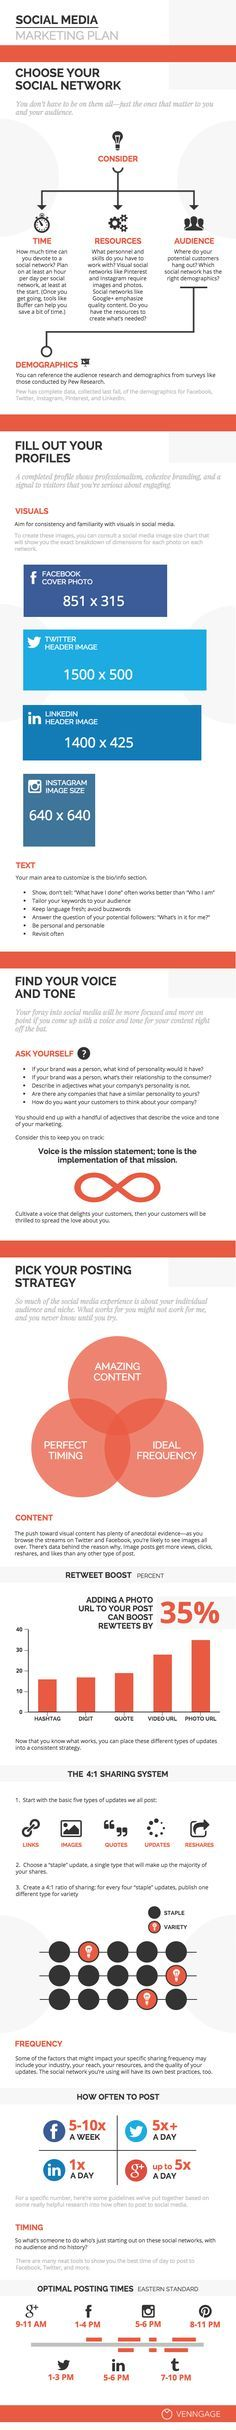 177 best MARKETING PLAN IDEAS images on Pinterest Marketing plan - social media marketing plan